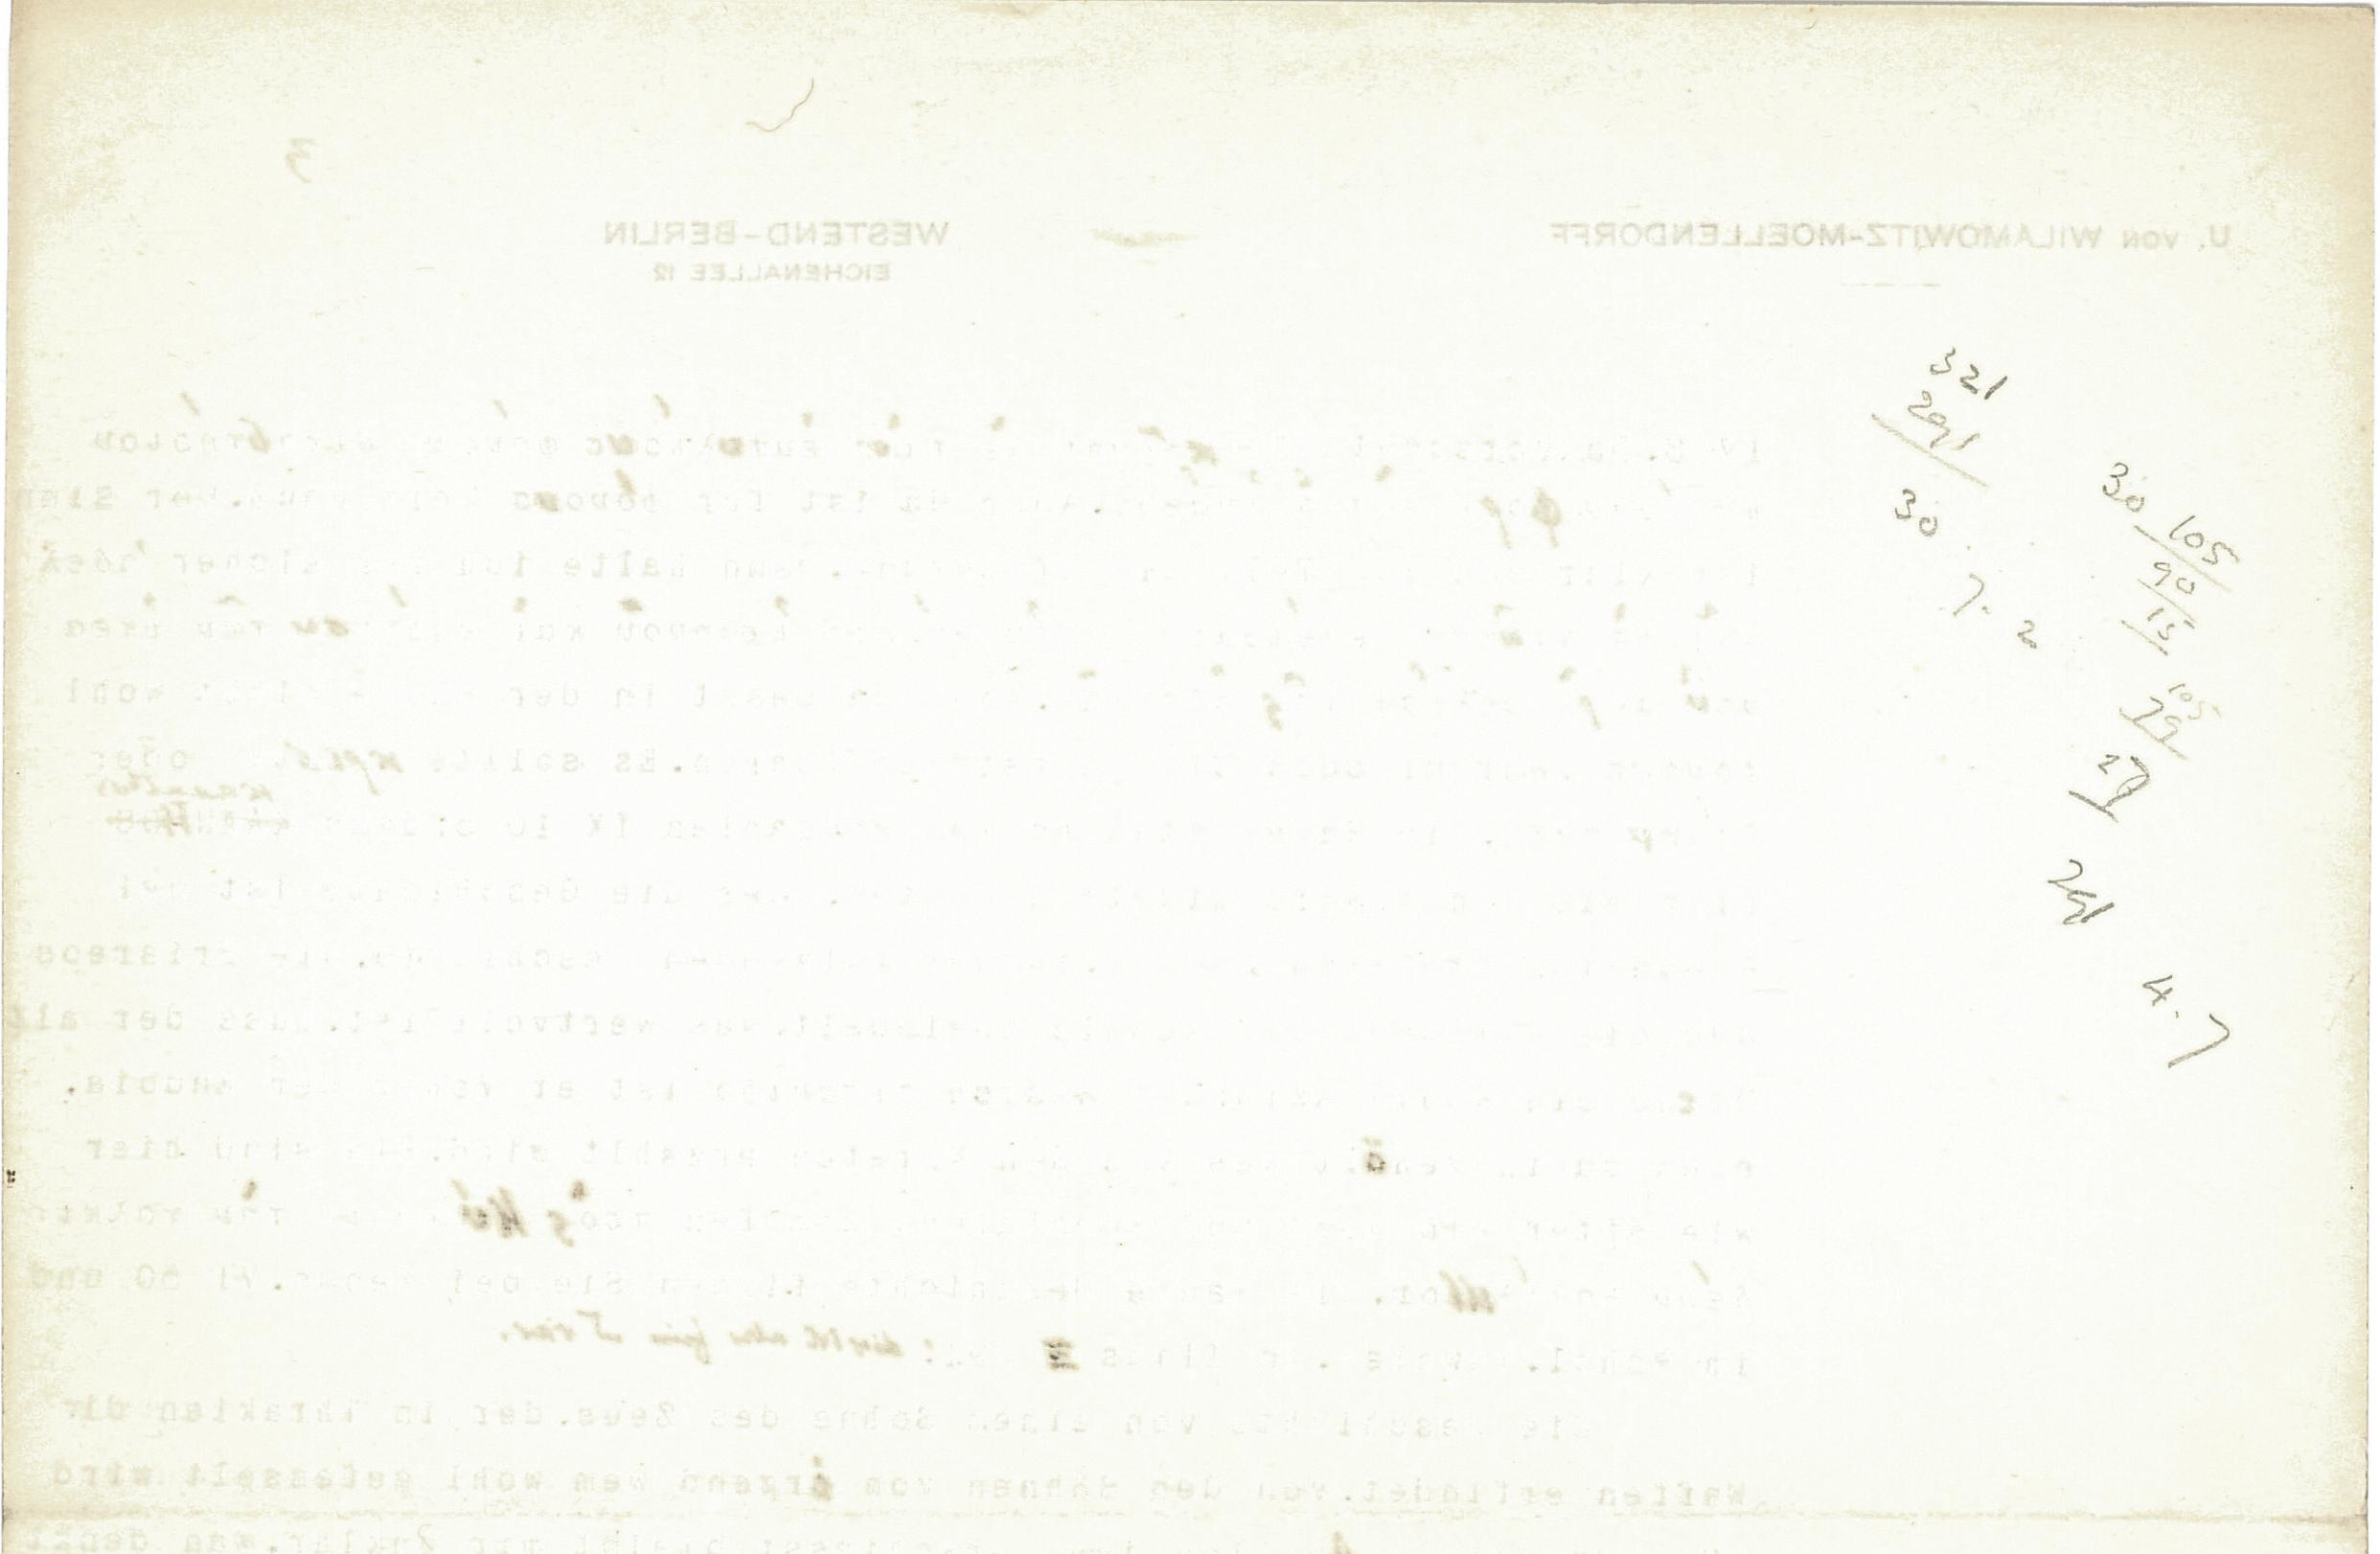 1908-09 A.S. Hunt, letters re papyri from continental scholars DIST.30.17e